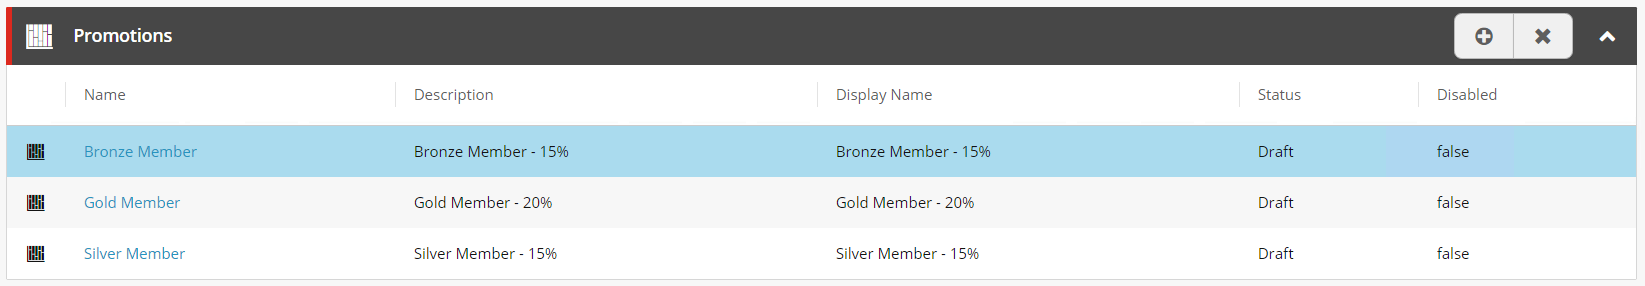 Rule Based Promotions in Sitecore Commerce